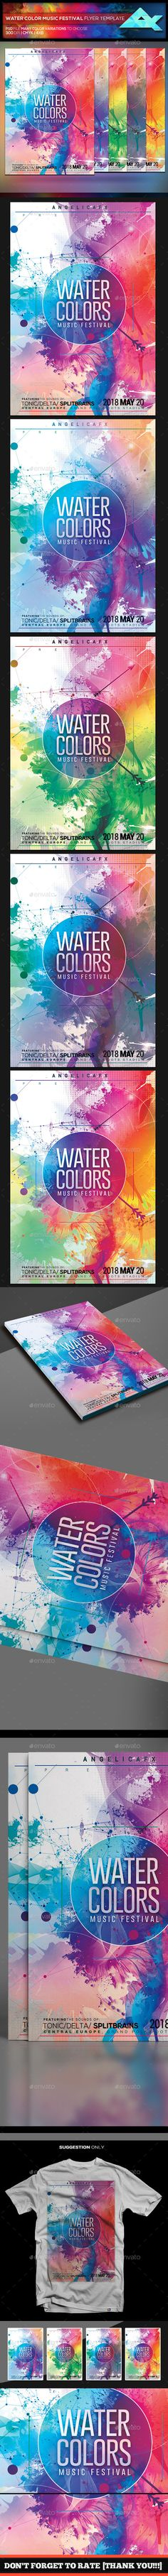 Water Color Music Festival Flyer Template PSD